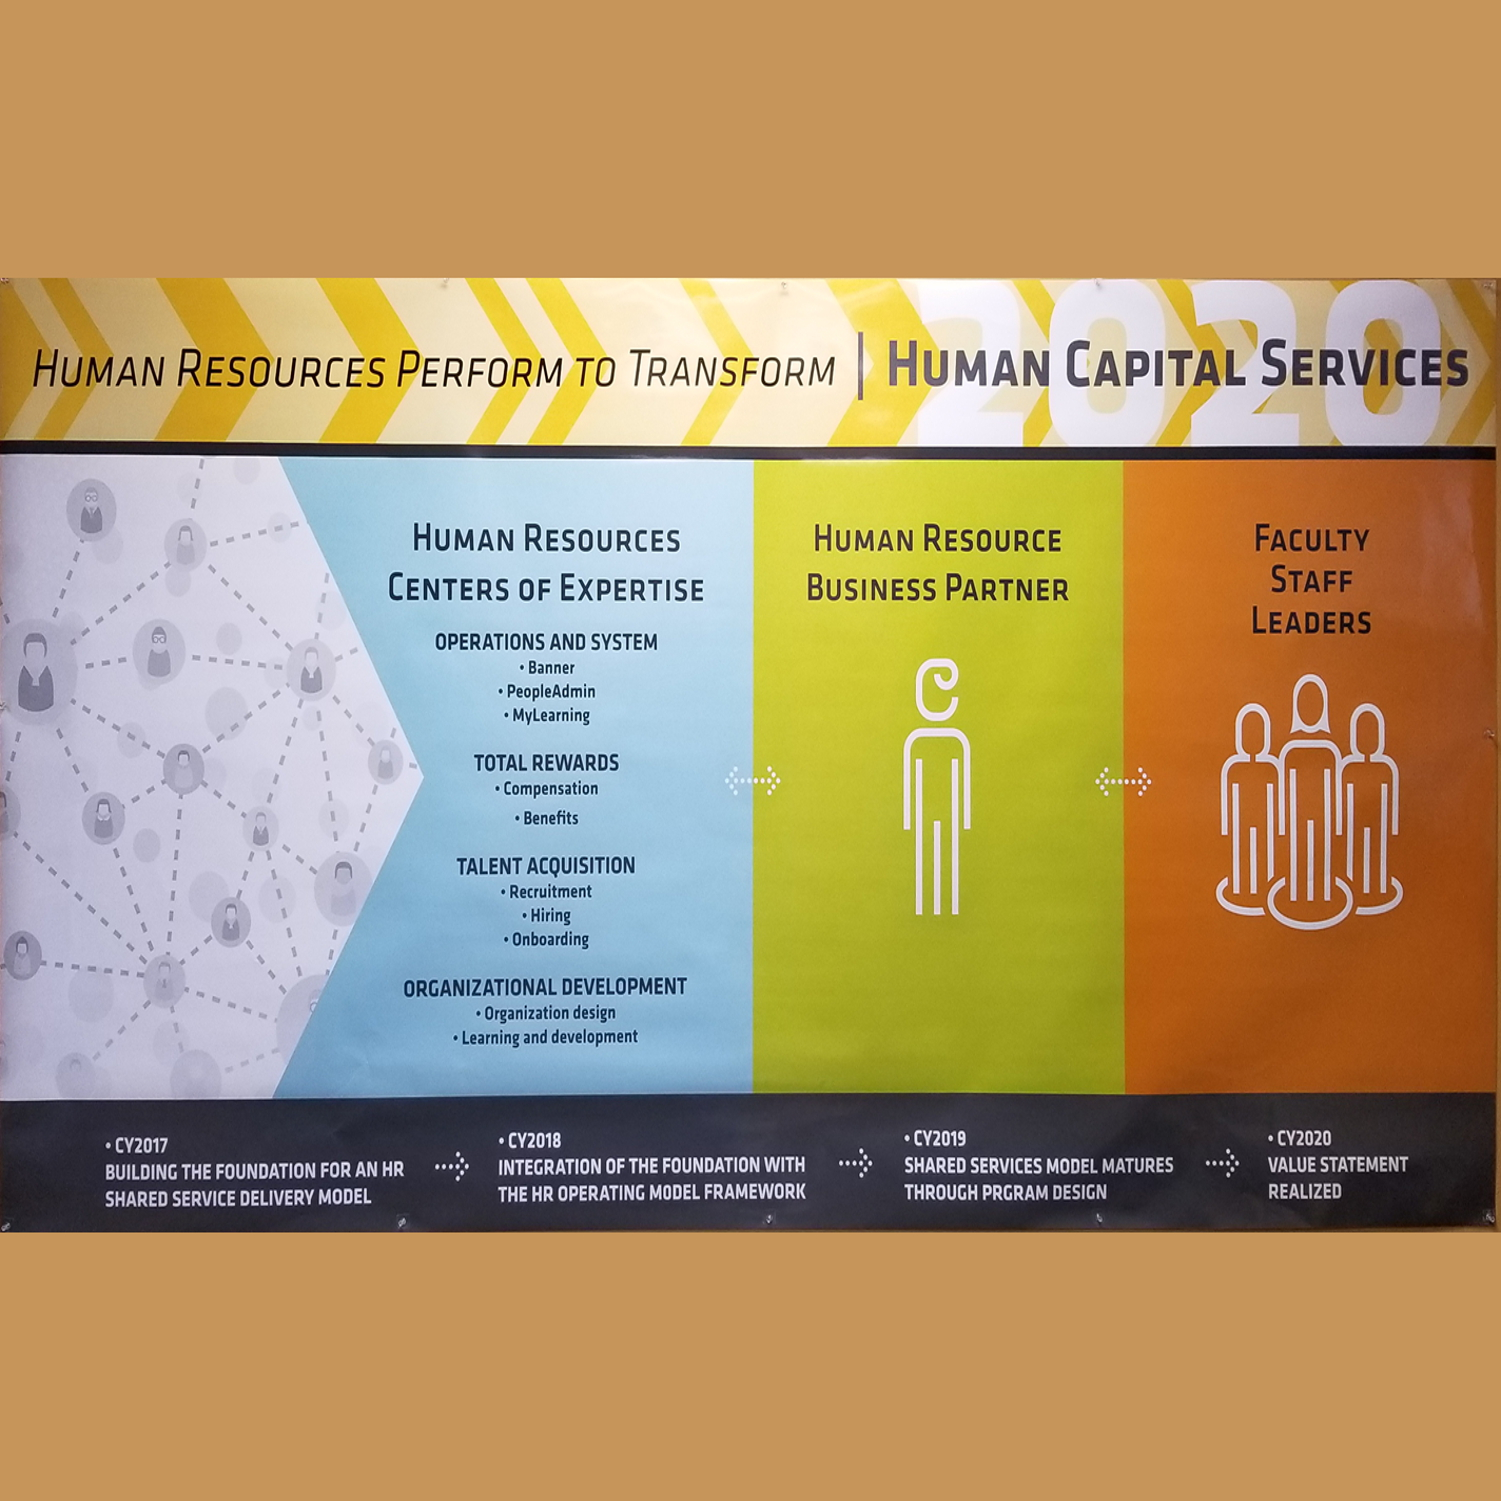 HR Shared Services Model